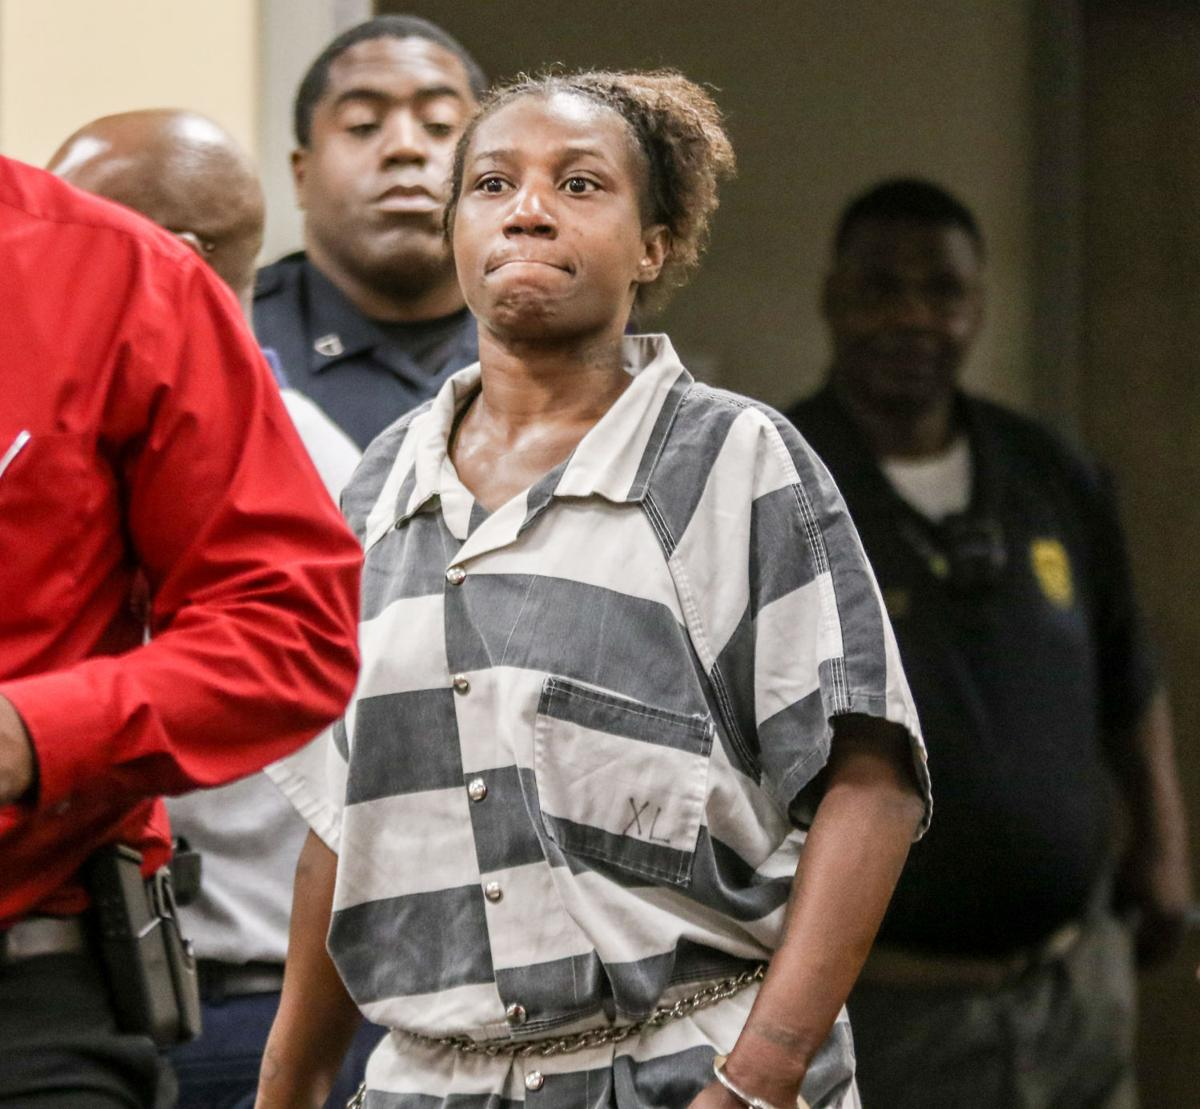 Meridian woman charged with capital murder following discovery of a child's body